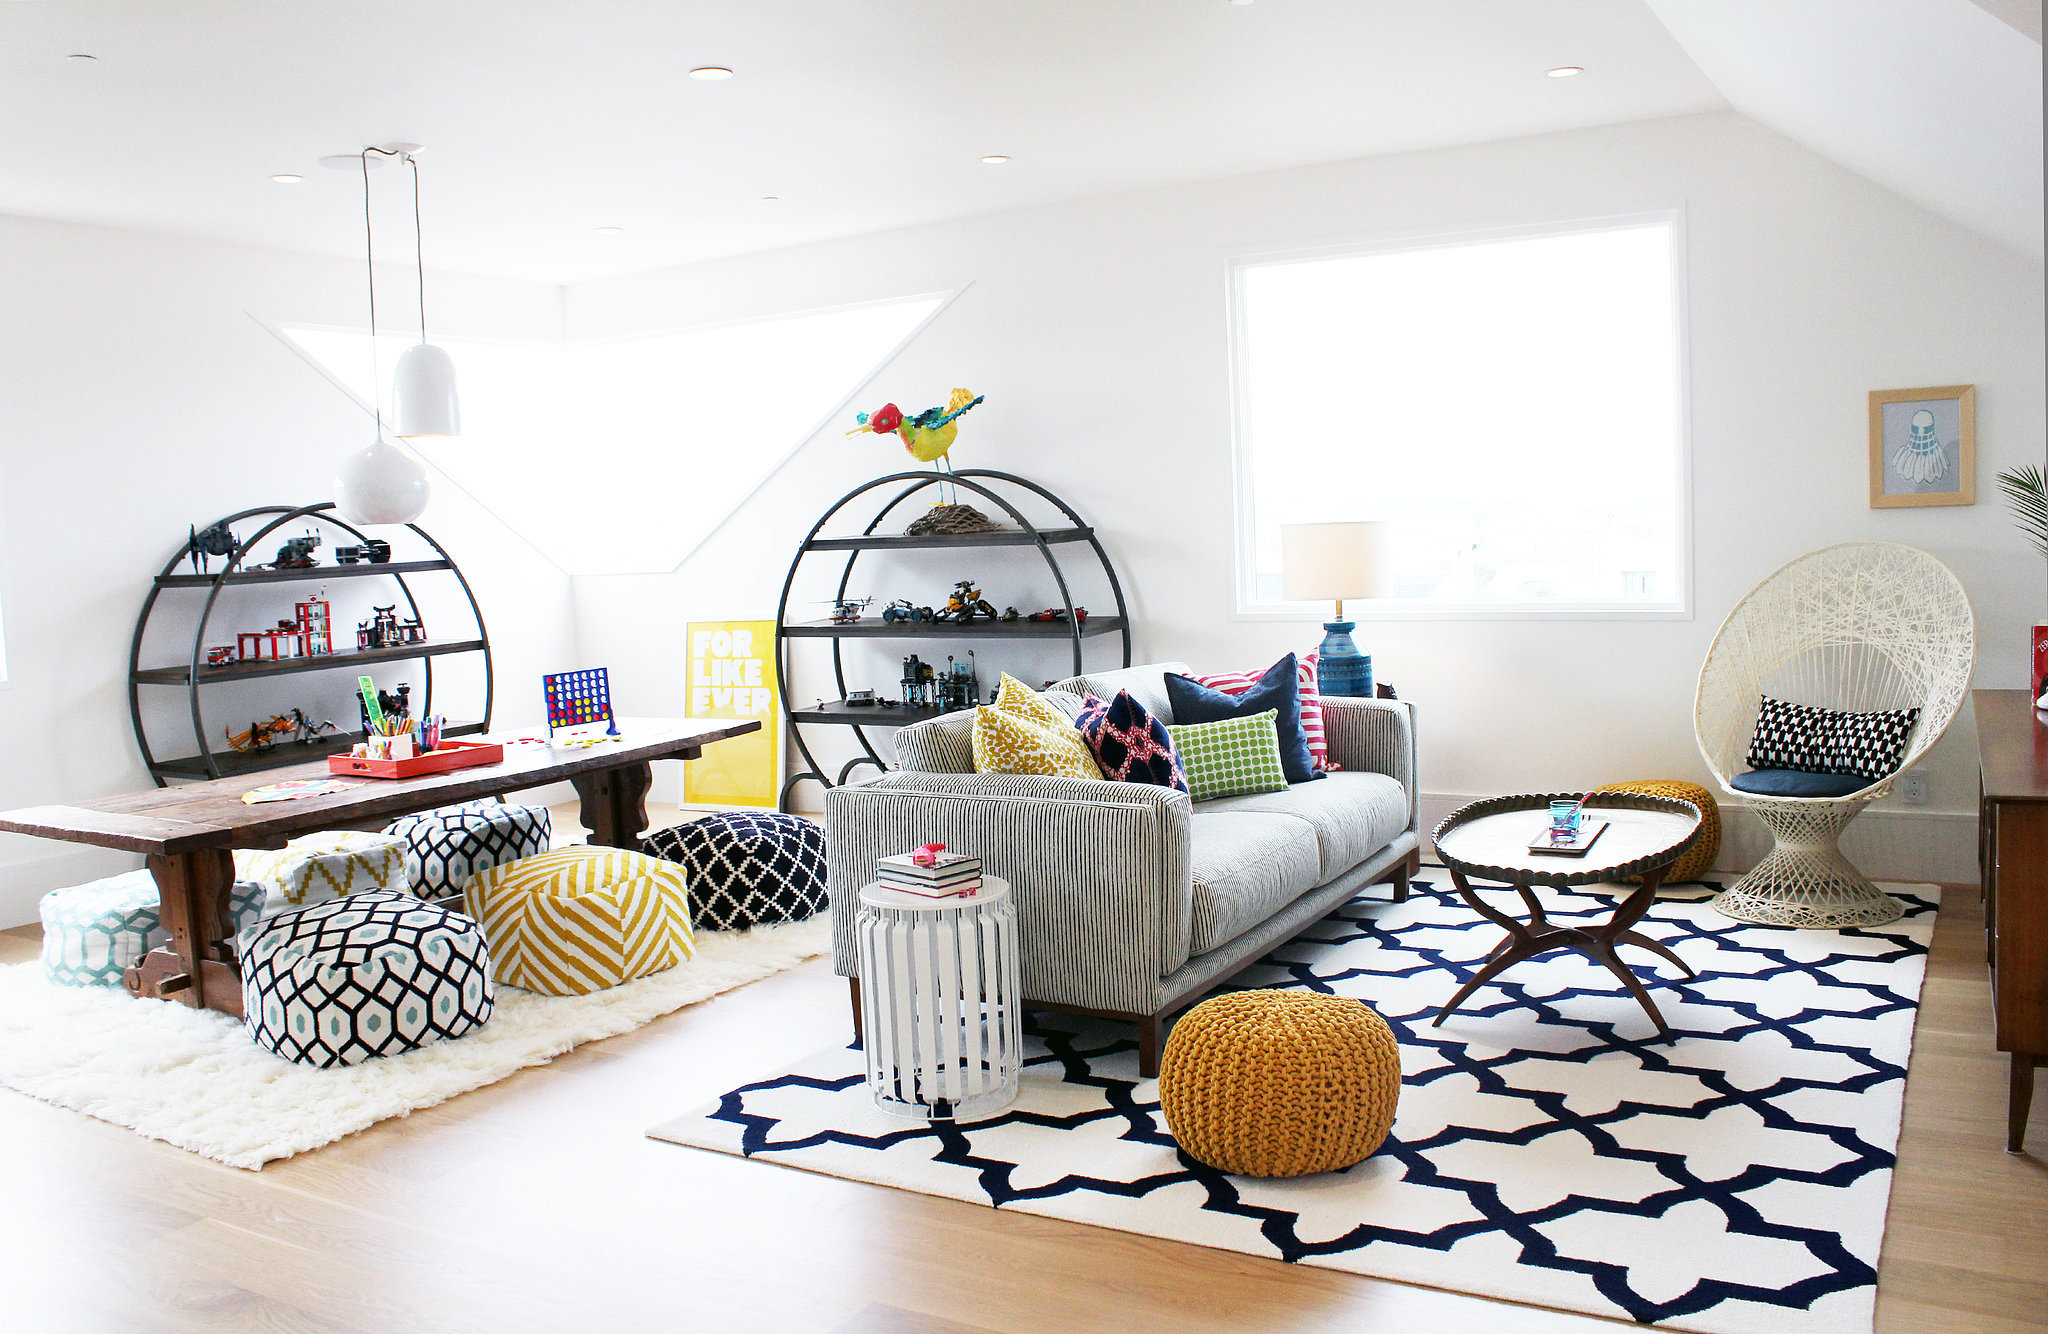 Online home decorating services popsugar home for House and home decorating